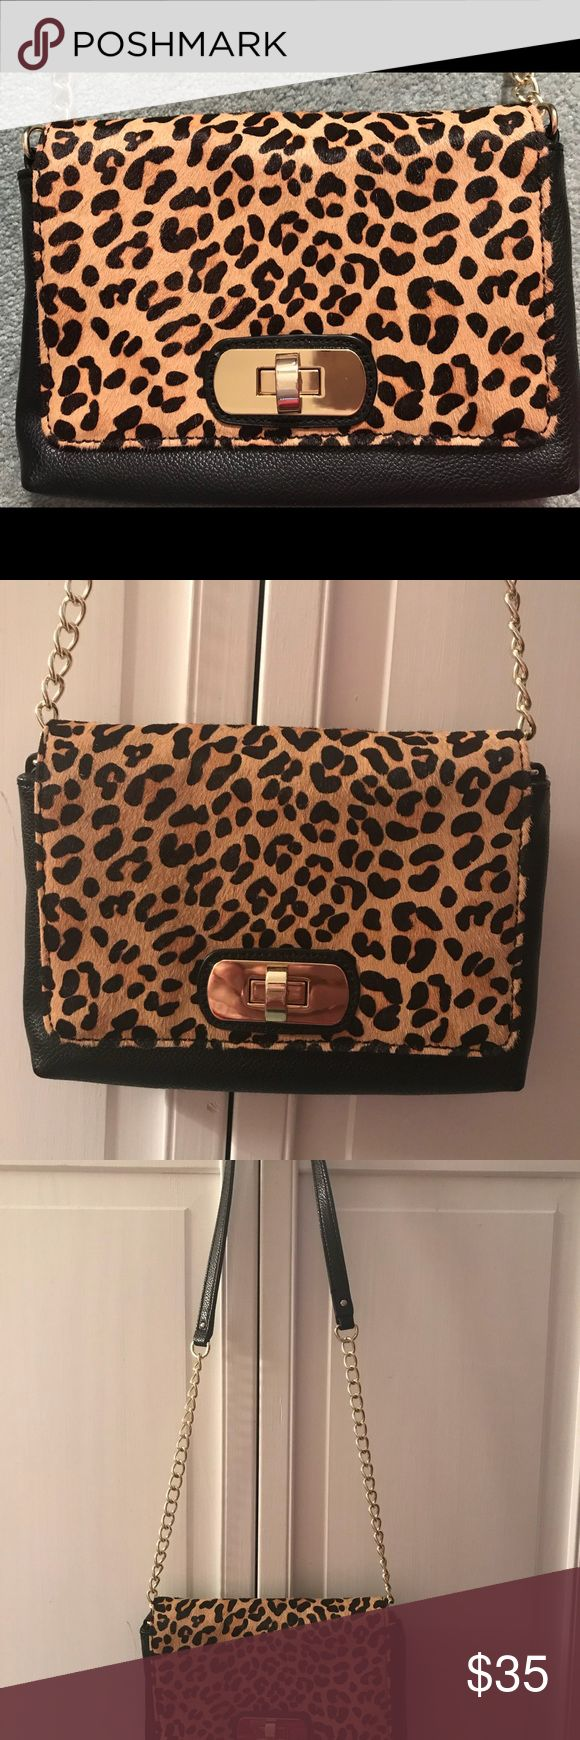 Banana Republic Animal Print Purse Stylish Banana Republic Dyed Calf Hair Purse. Gold chain and faux leather strap. Synthetic Leather. Mint pre-owned condition! Used just once! Bags Crossbody Bags